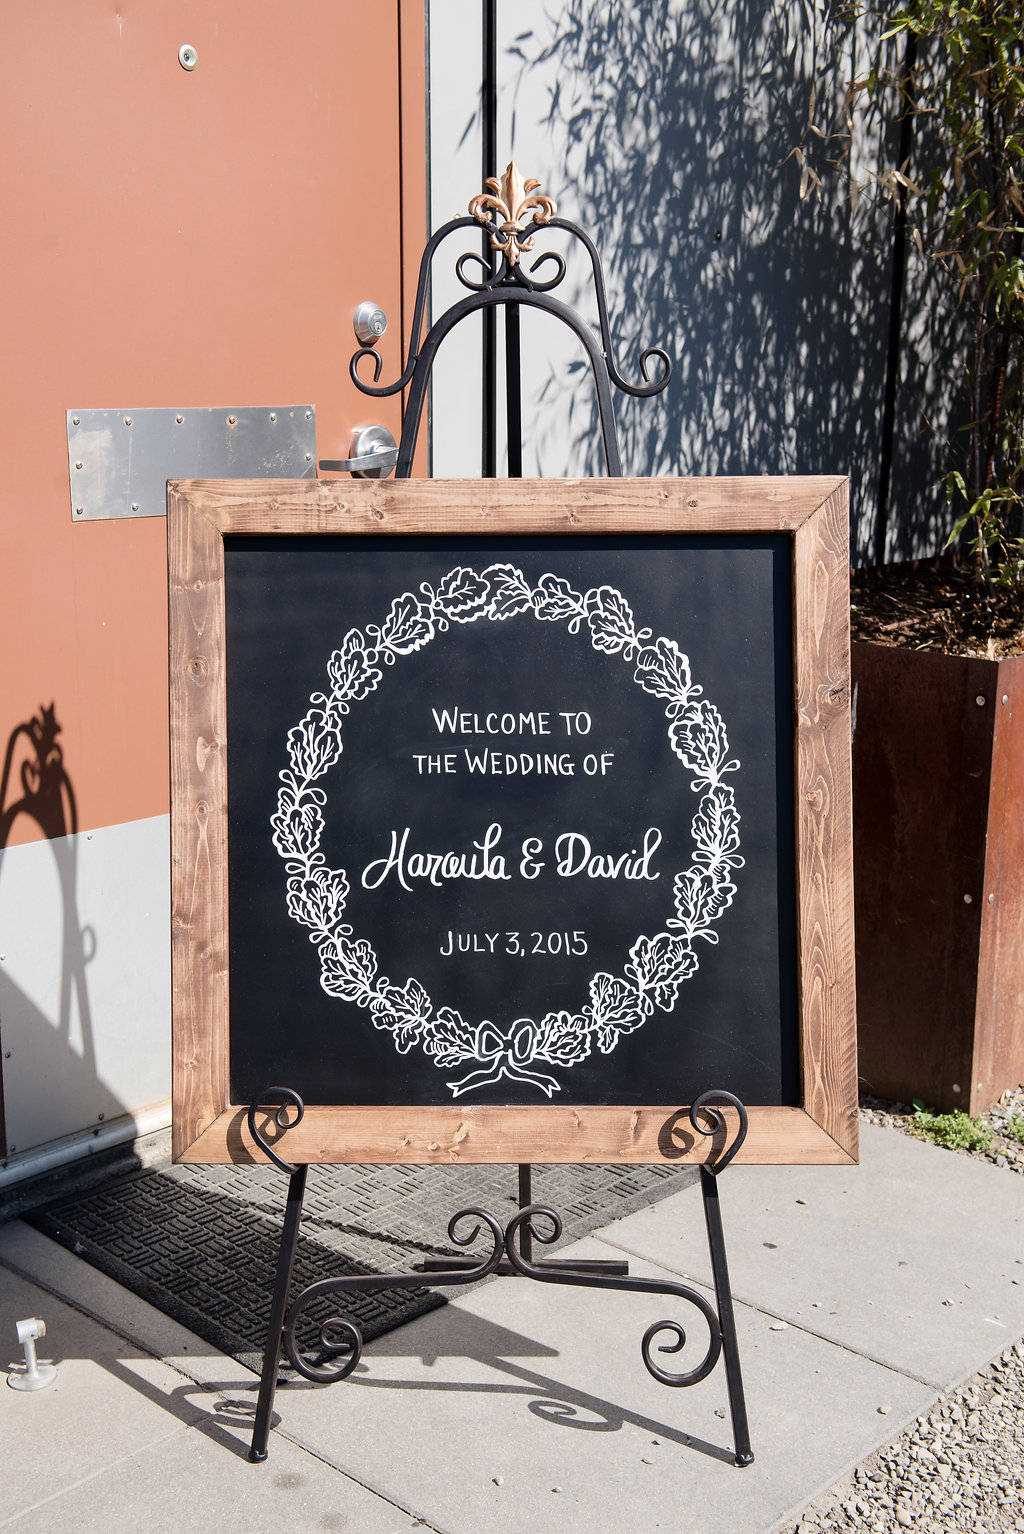 Within Sodo Wedding | Wedding Chalkboard Welcome Sign | Affinity Photography | Seattle Wedding Planner | New Creations Weddings